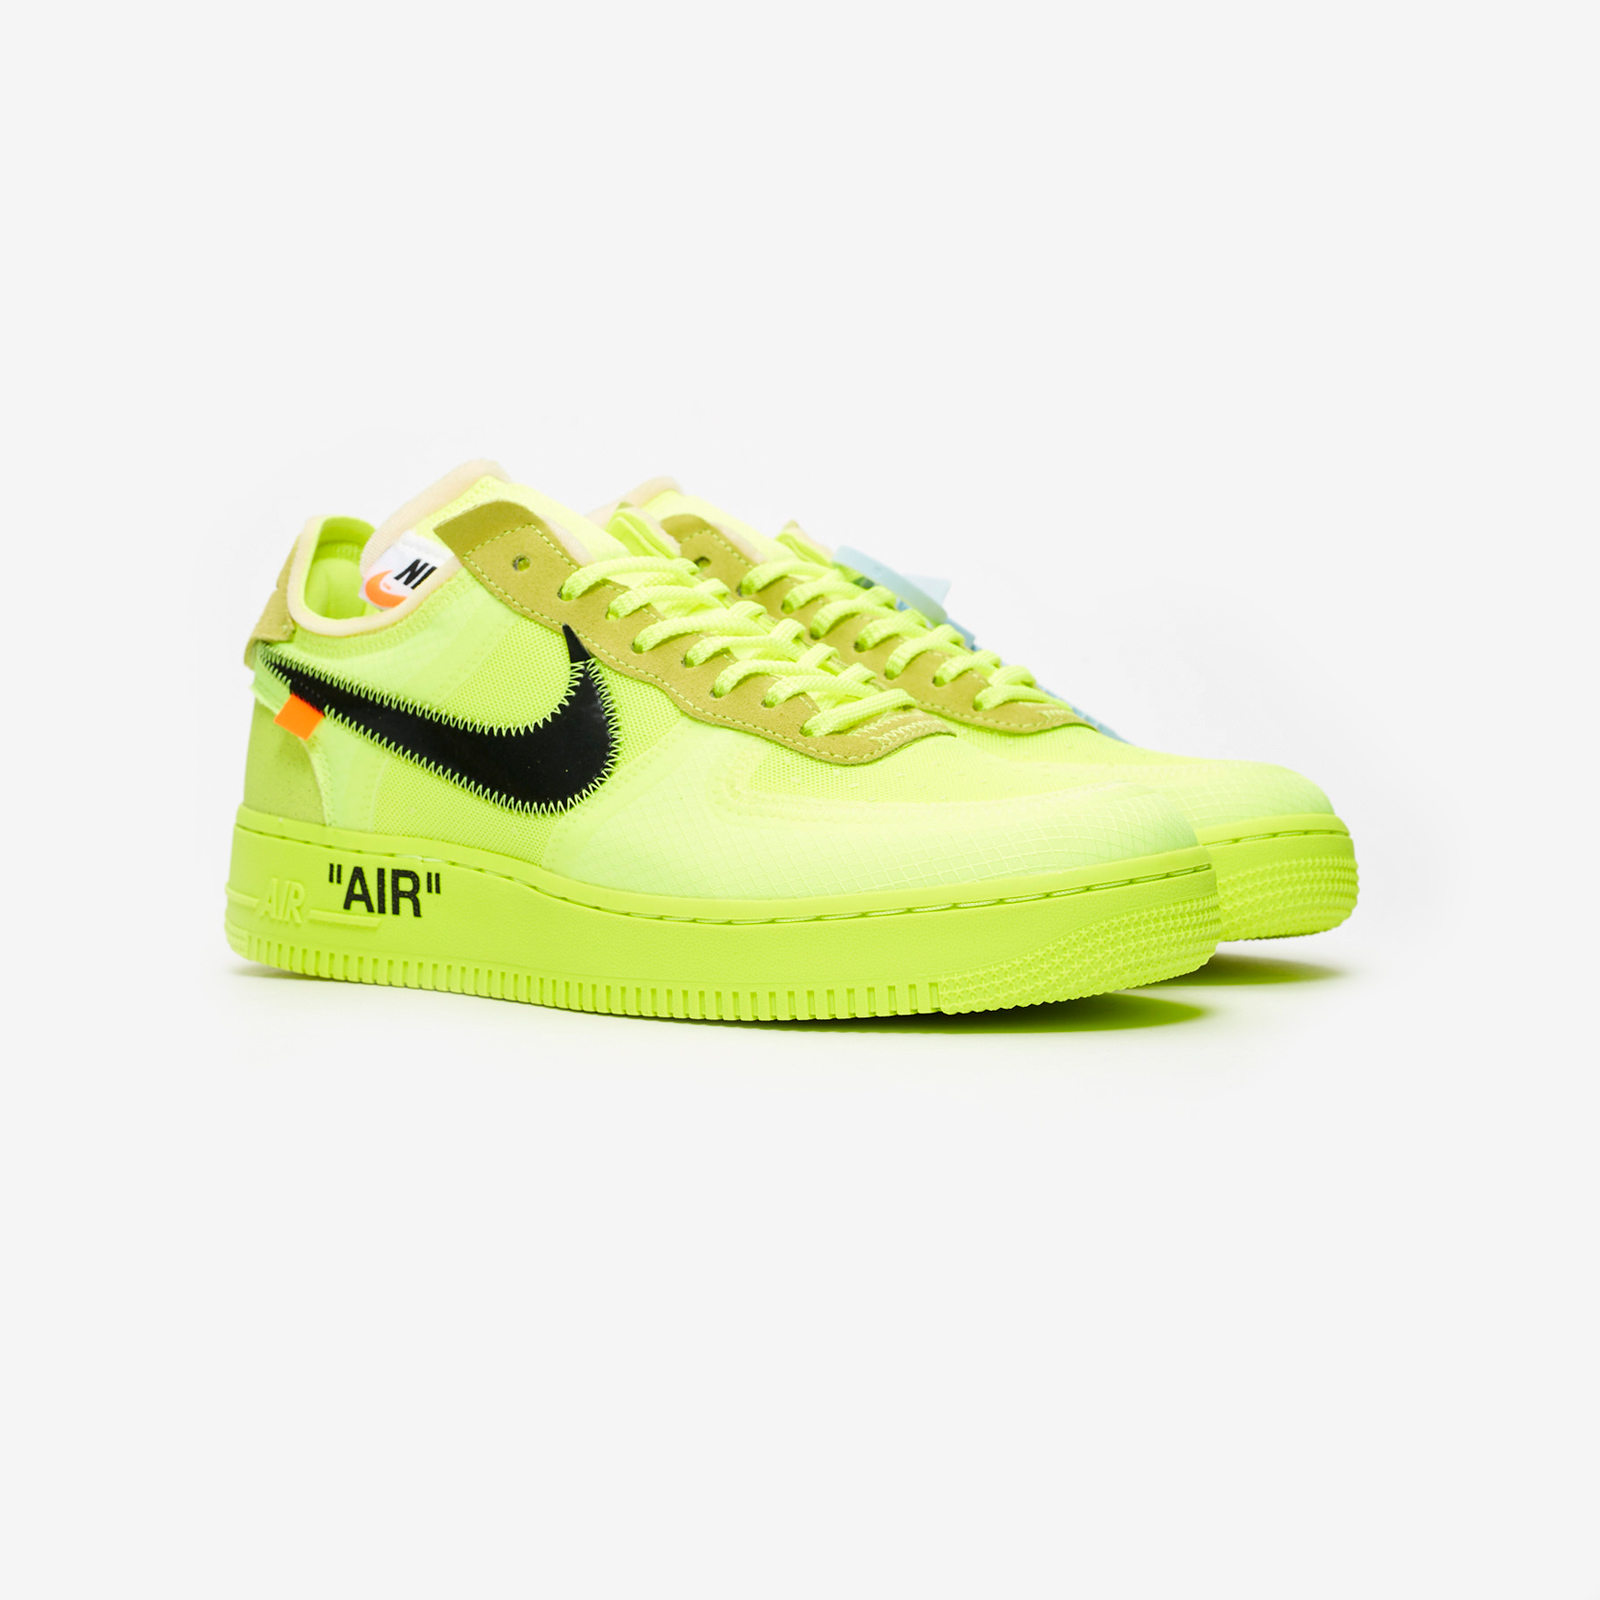 Nike The 10: Air Force 1 Low Ao4606 700 Sneakersnstuff